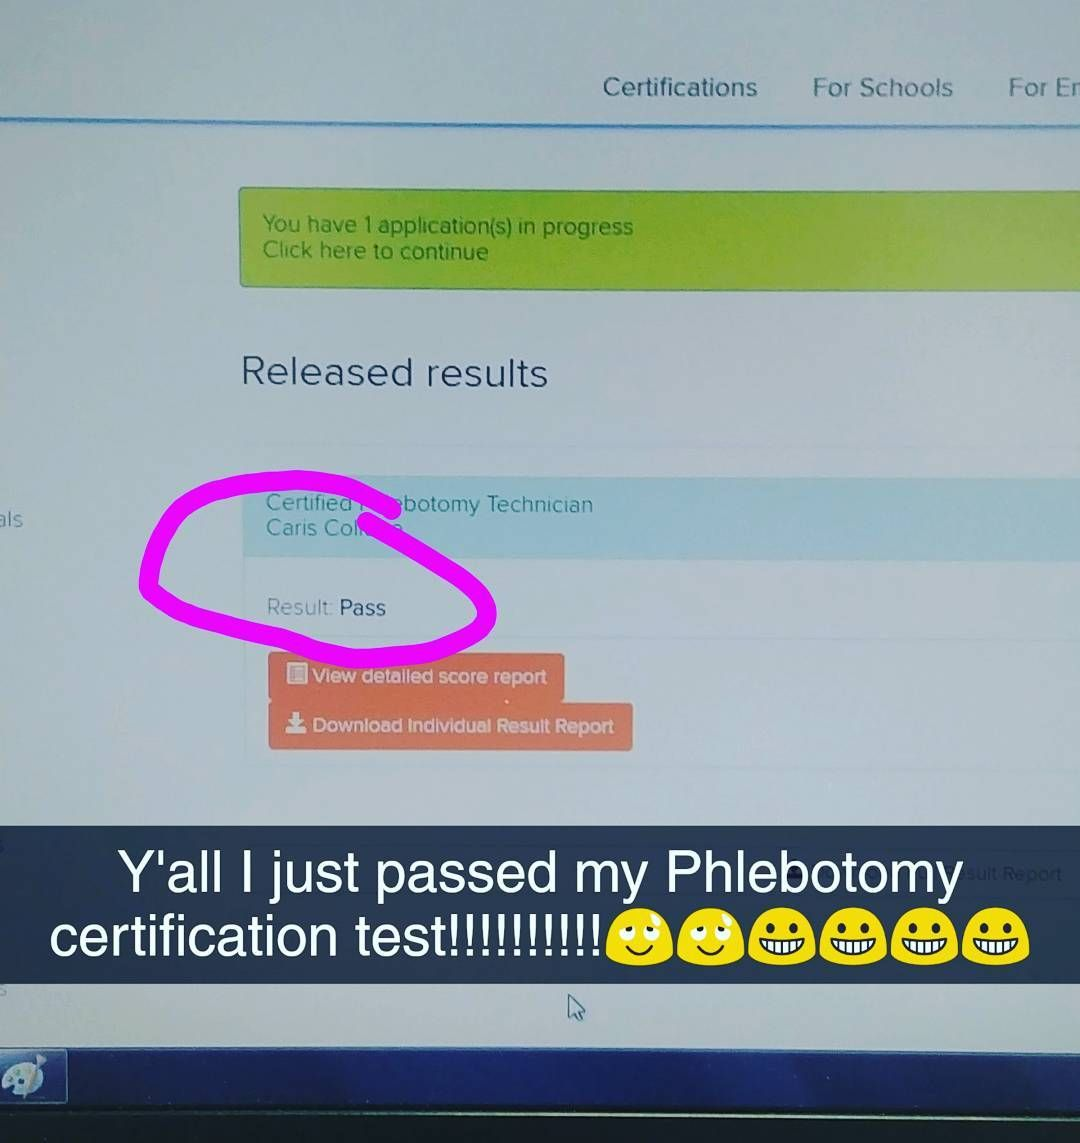 Posted it on my snapchat first but yall i had my phlebotomy posted it on my first but yall i had my phlebotomy certification exam today and i paaaaaaassed 1betcityfo Gallery